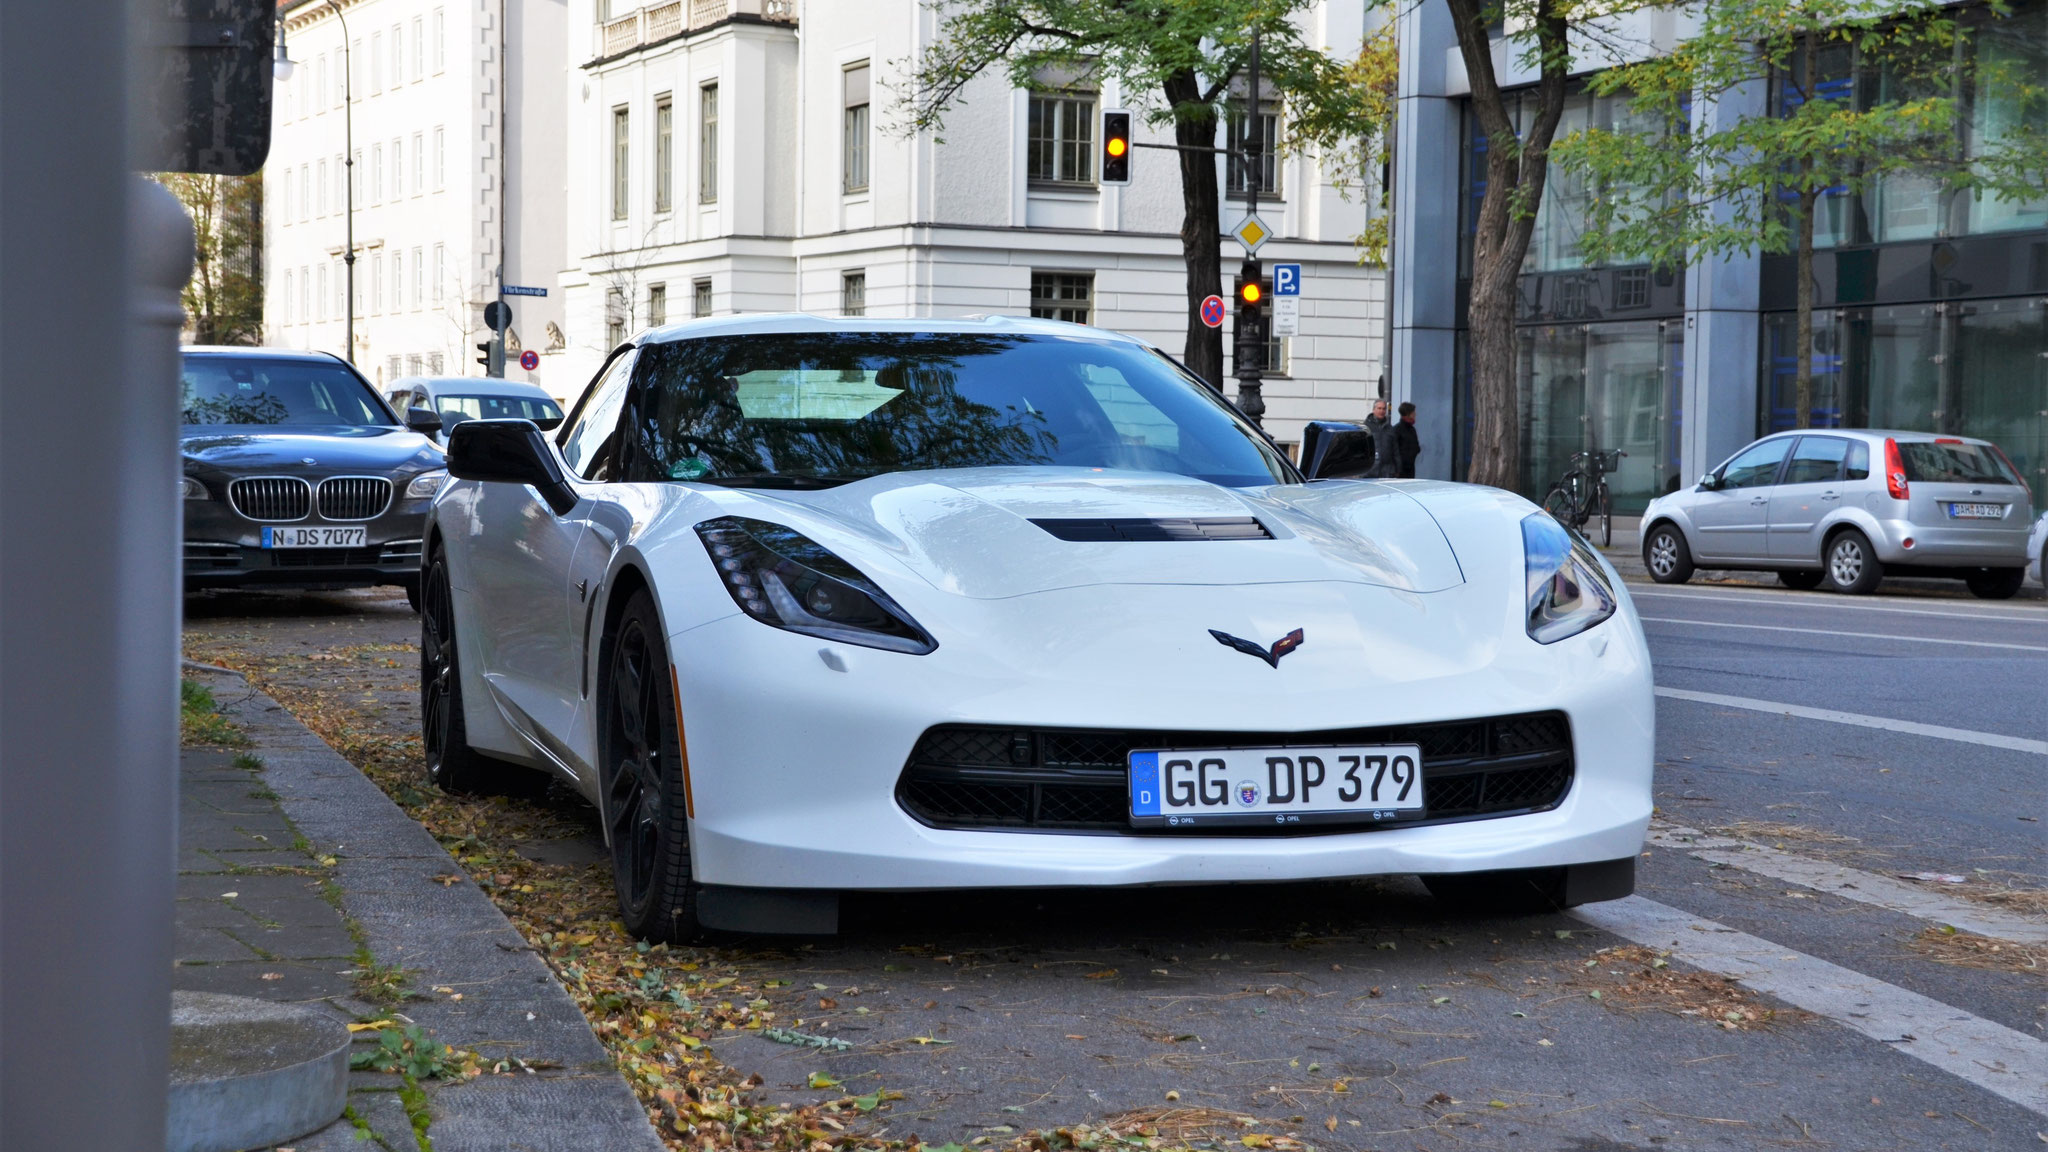 Chevrolet Corvette C7 Stingray - GG-DP-379